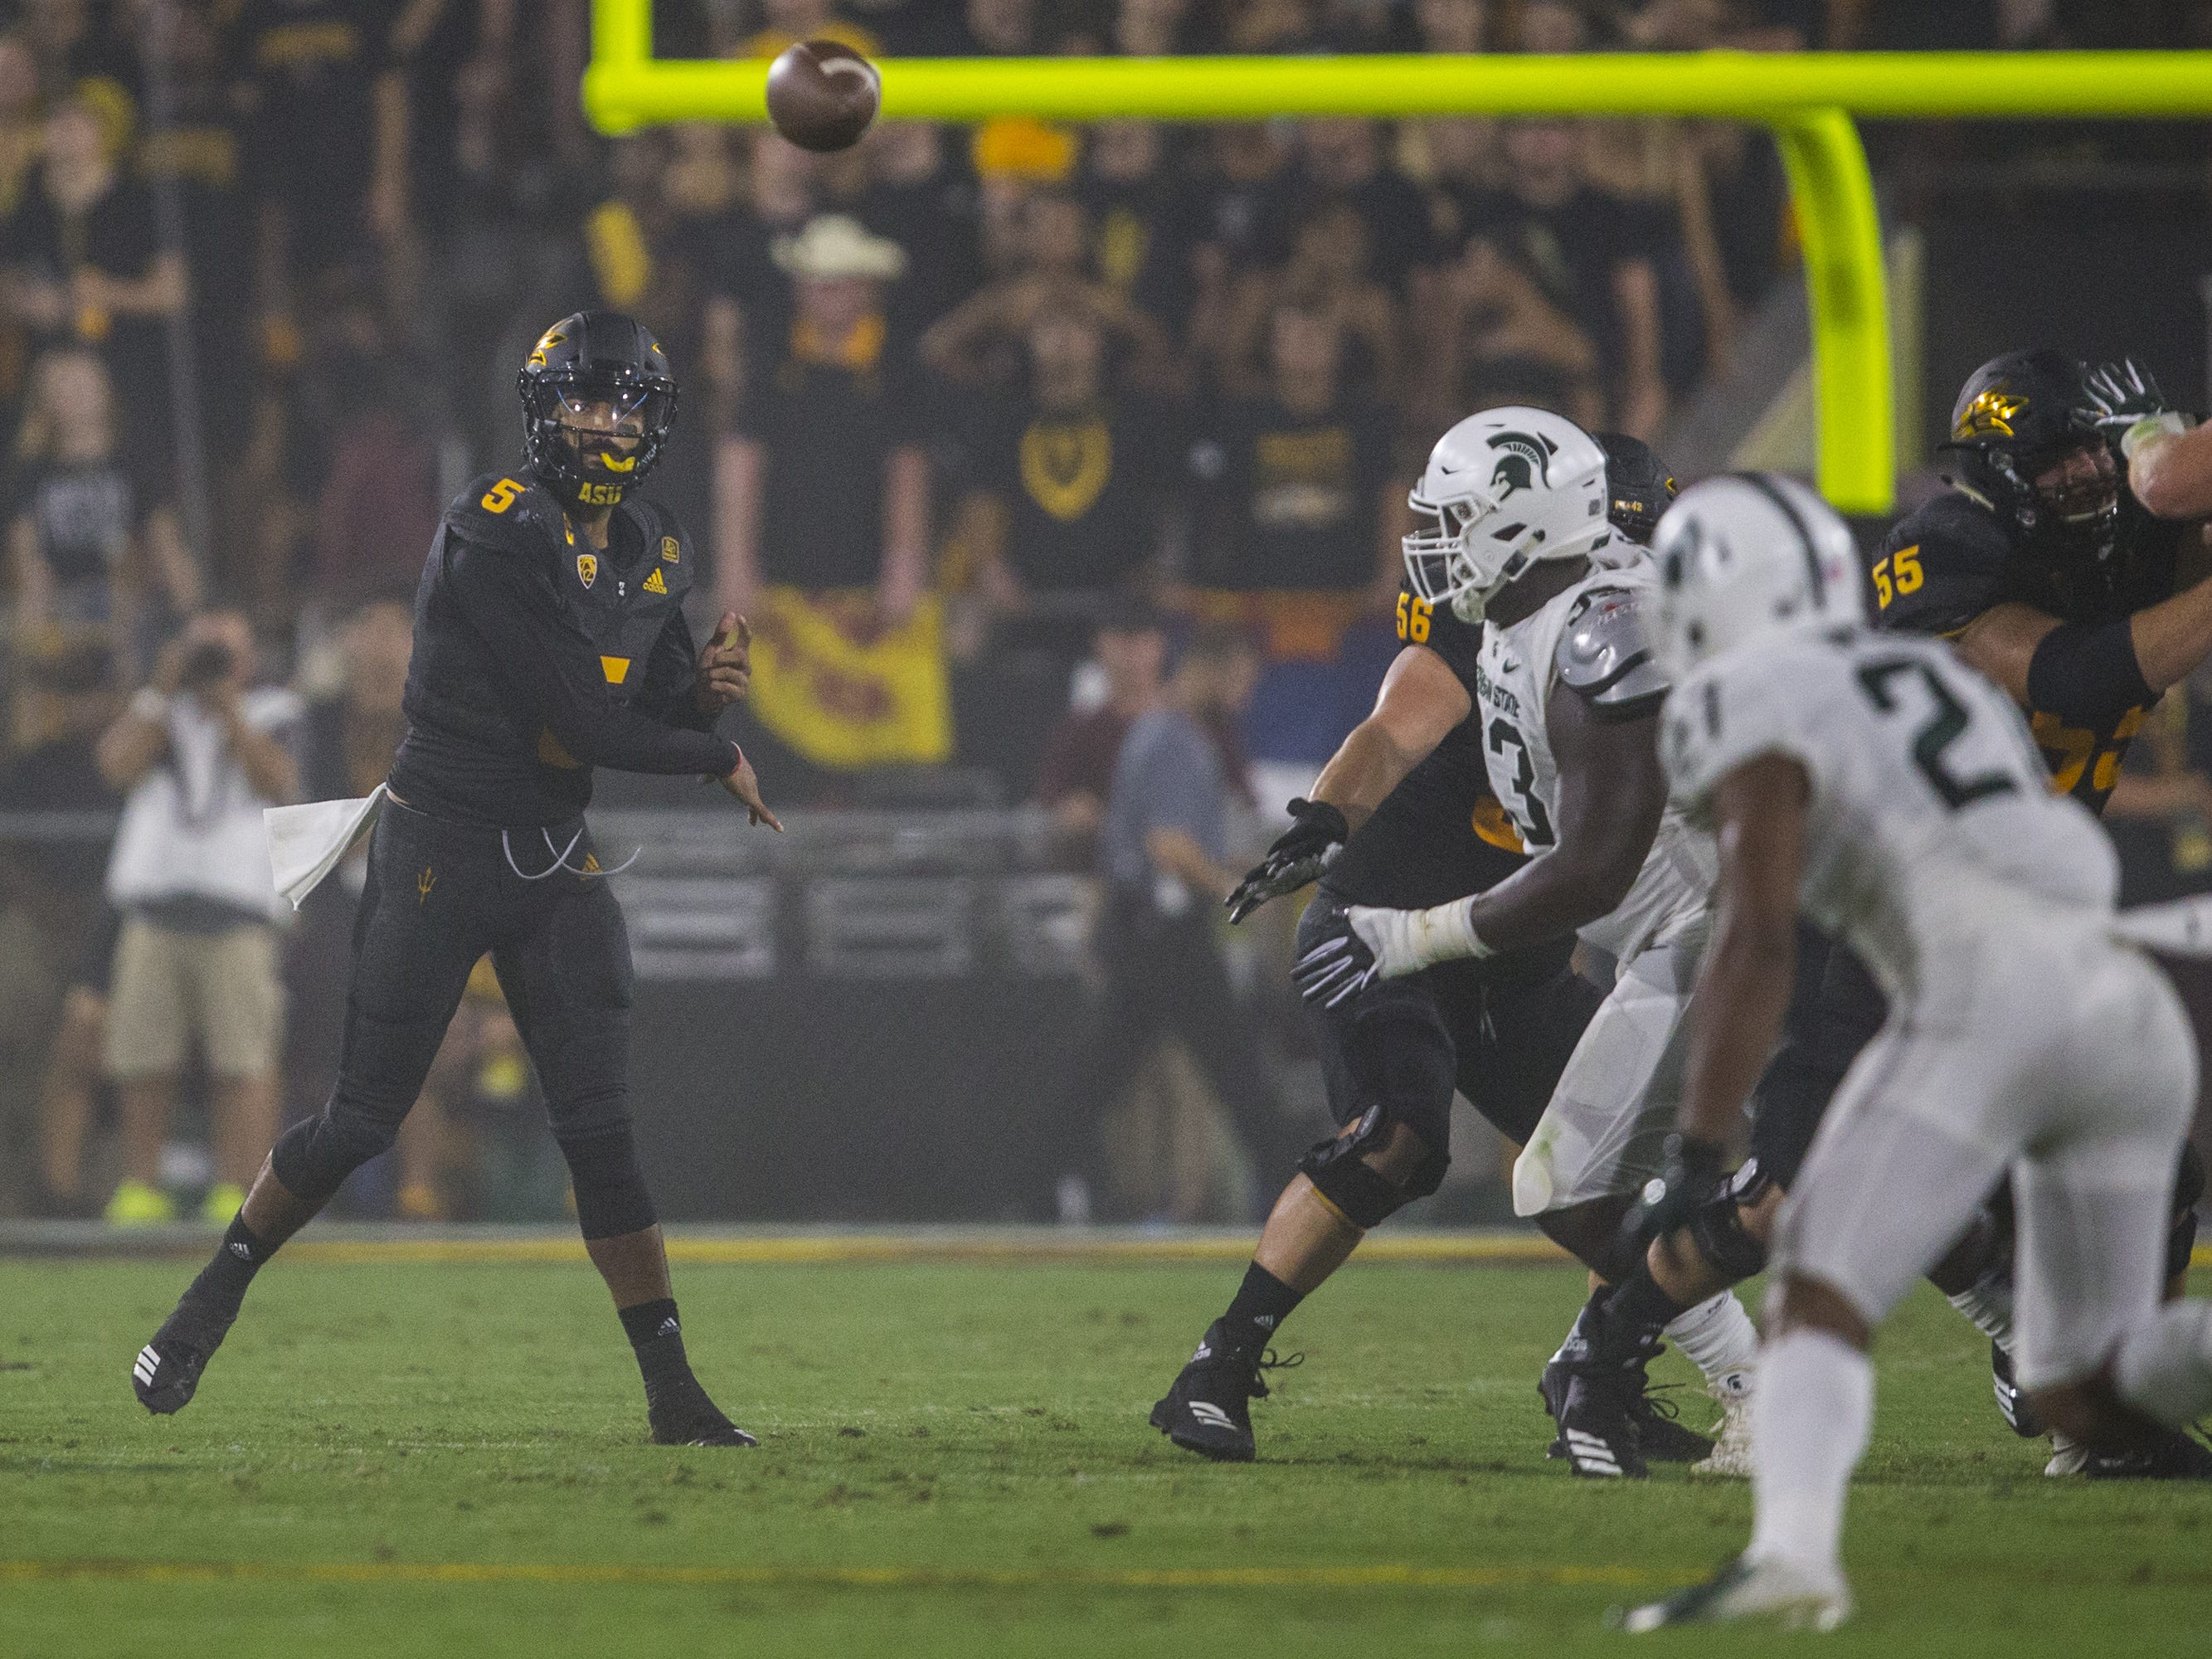 Arizona State's Manny Wilkins throws against Michigan State in the 2nd quarter on Saturday, Sept. 8, 2018, at Sun Devil Stadium in Tempe, Ariz.